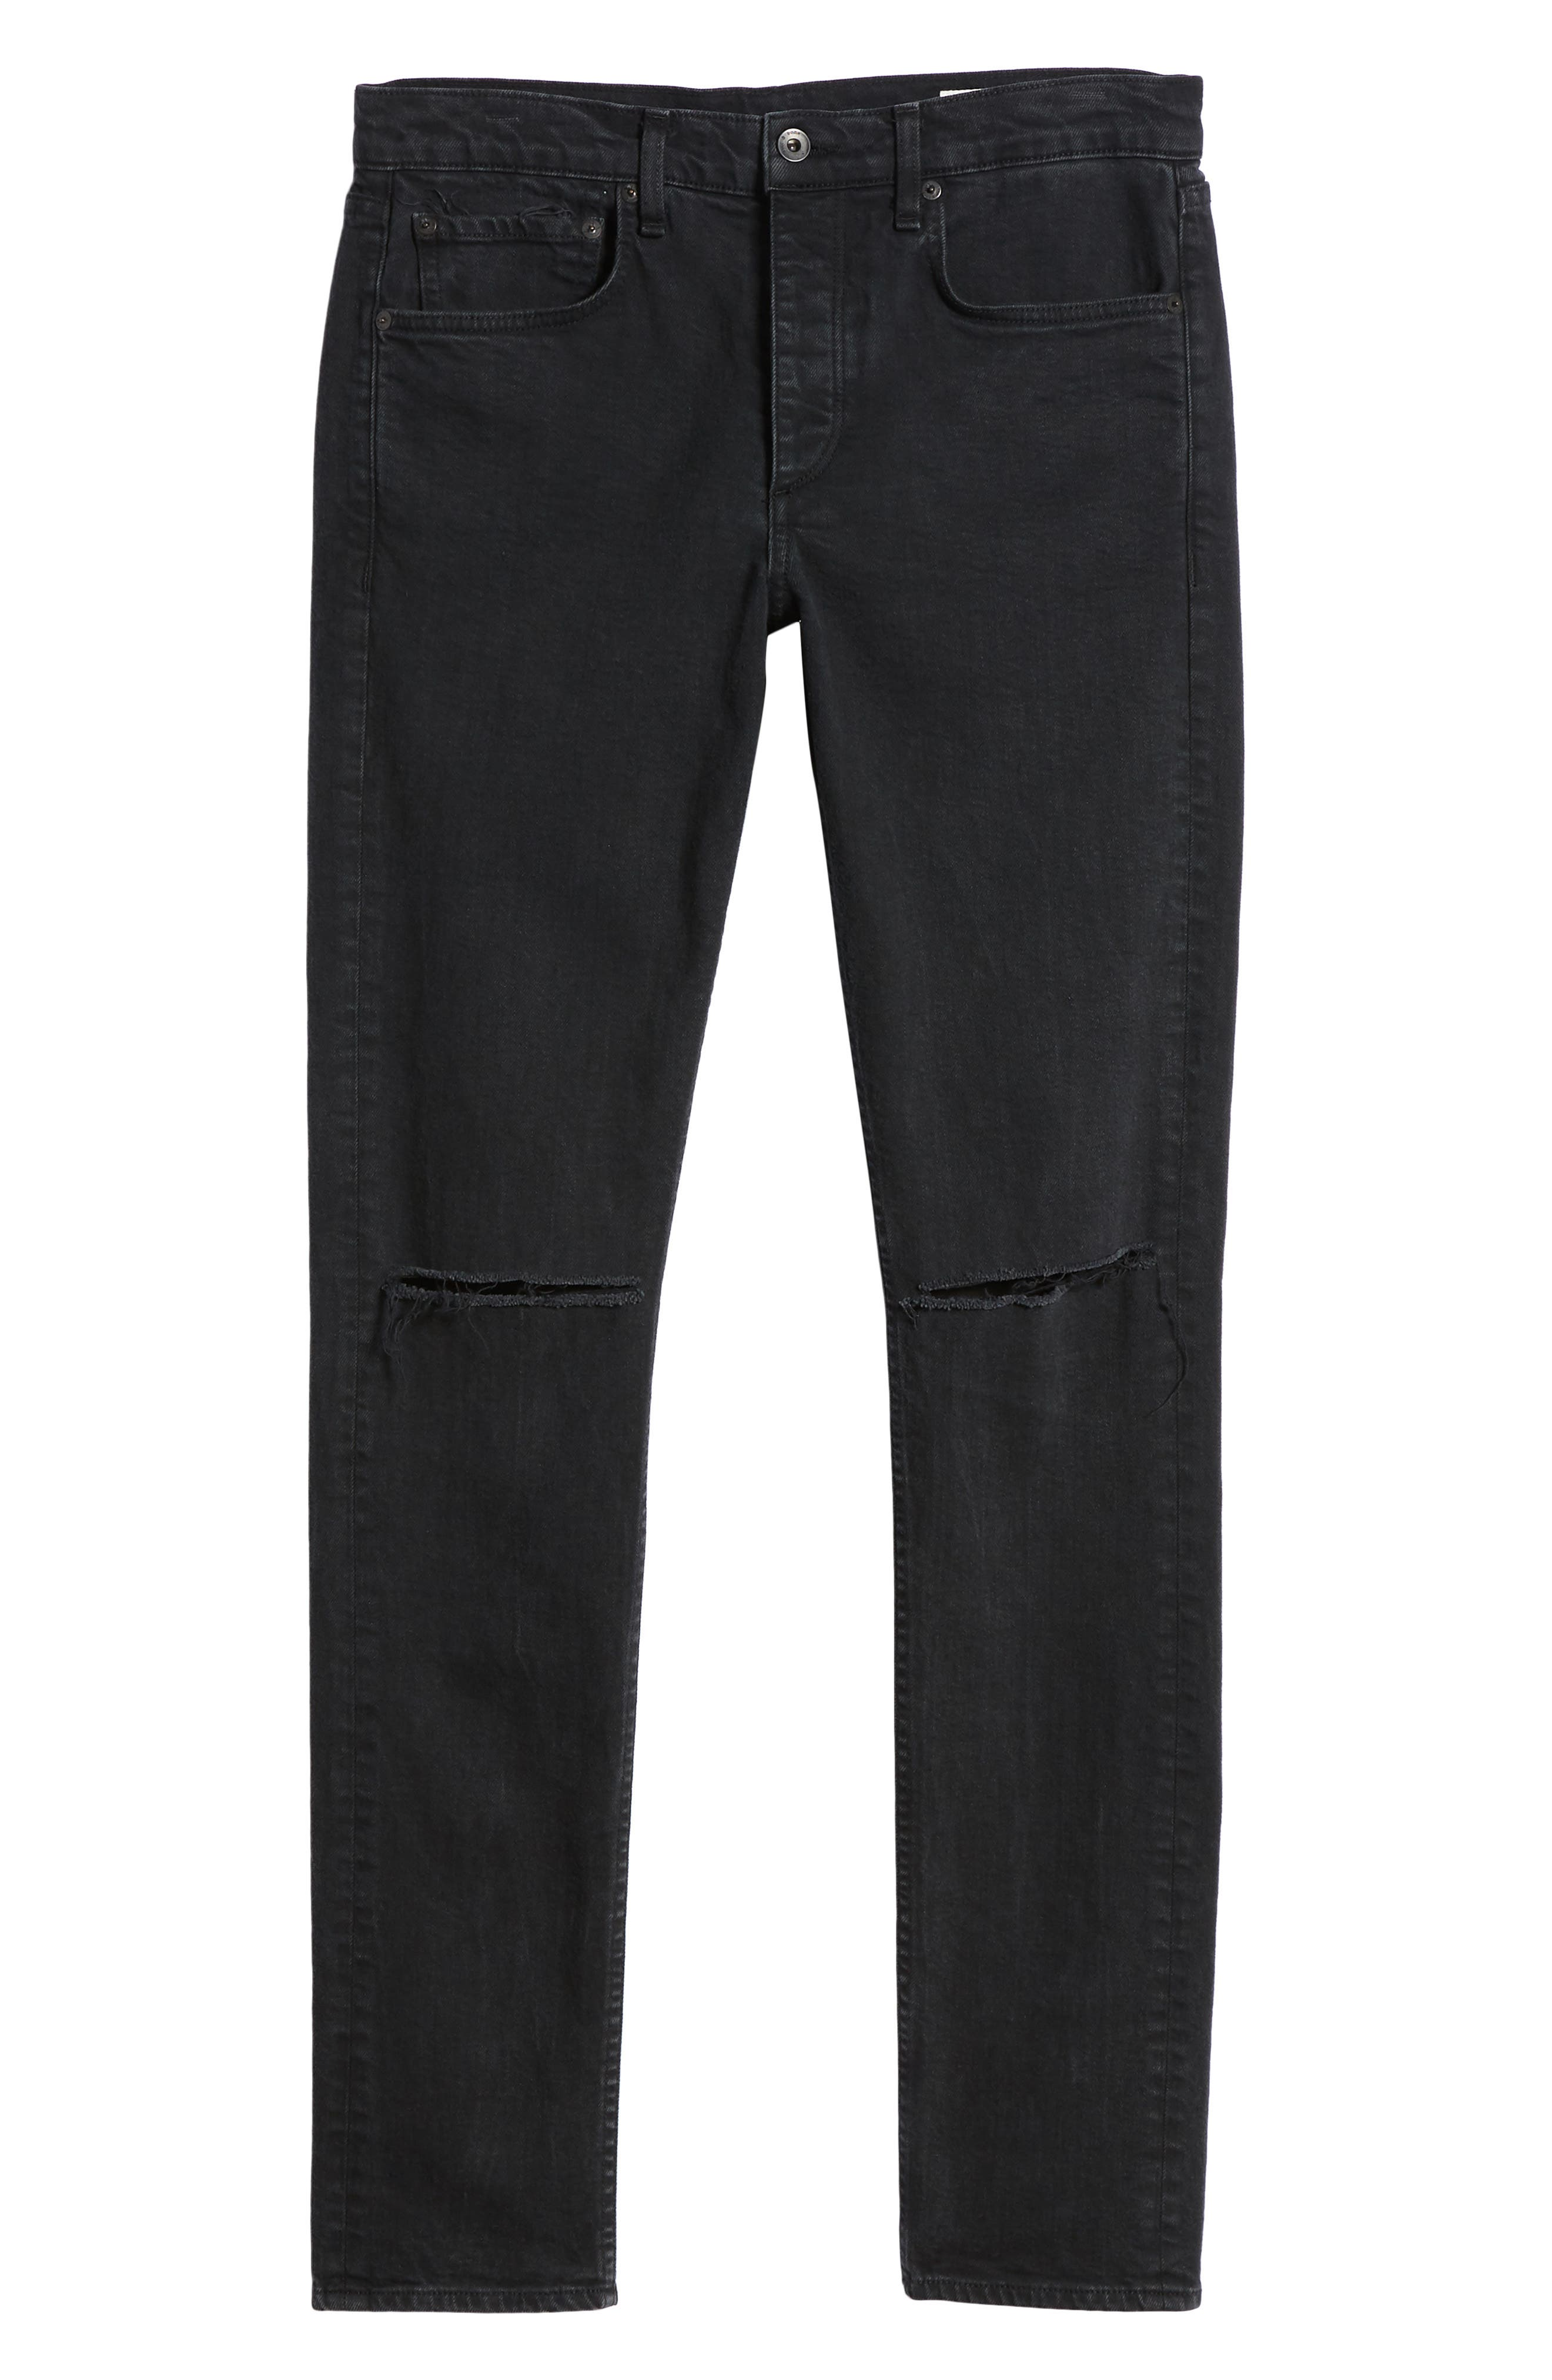 Fit 1 Skinny Fit Jeans,                             Alternate thumbnail 6, color,                             Shelter W/ Holes